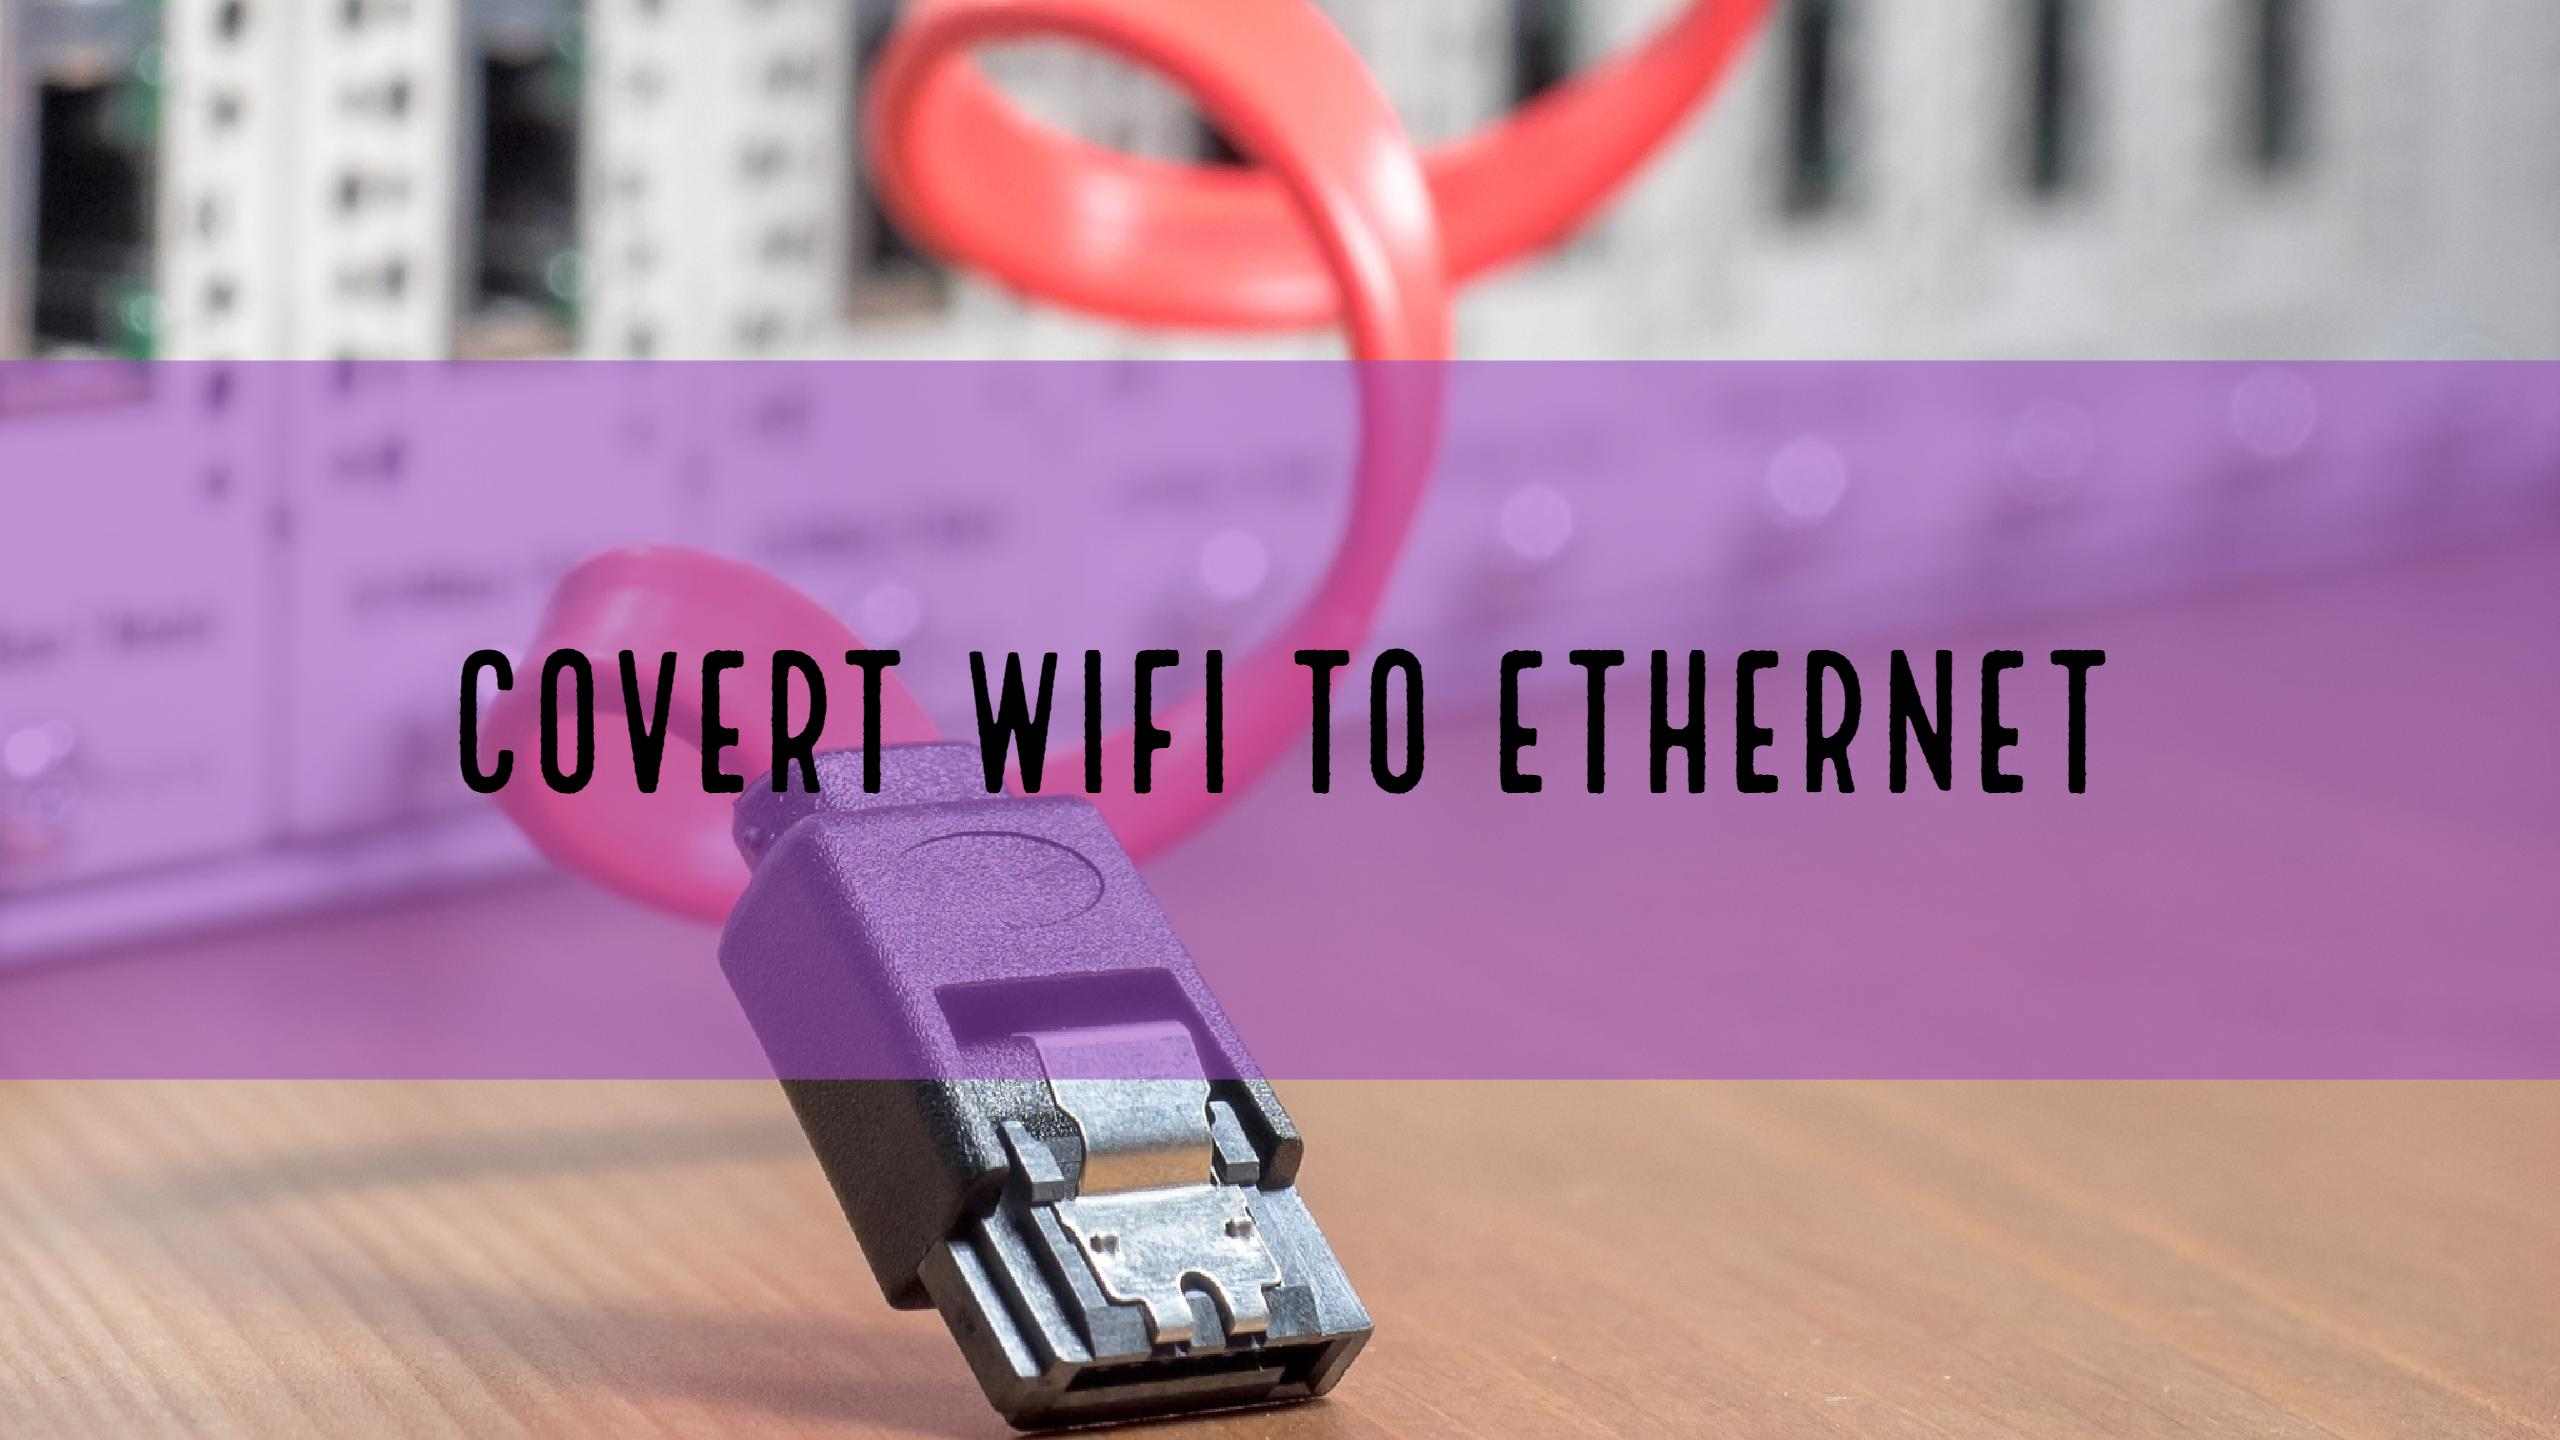 Best WiFi Extenders and Adapters to Convert WiFi to Gigabit